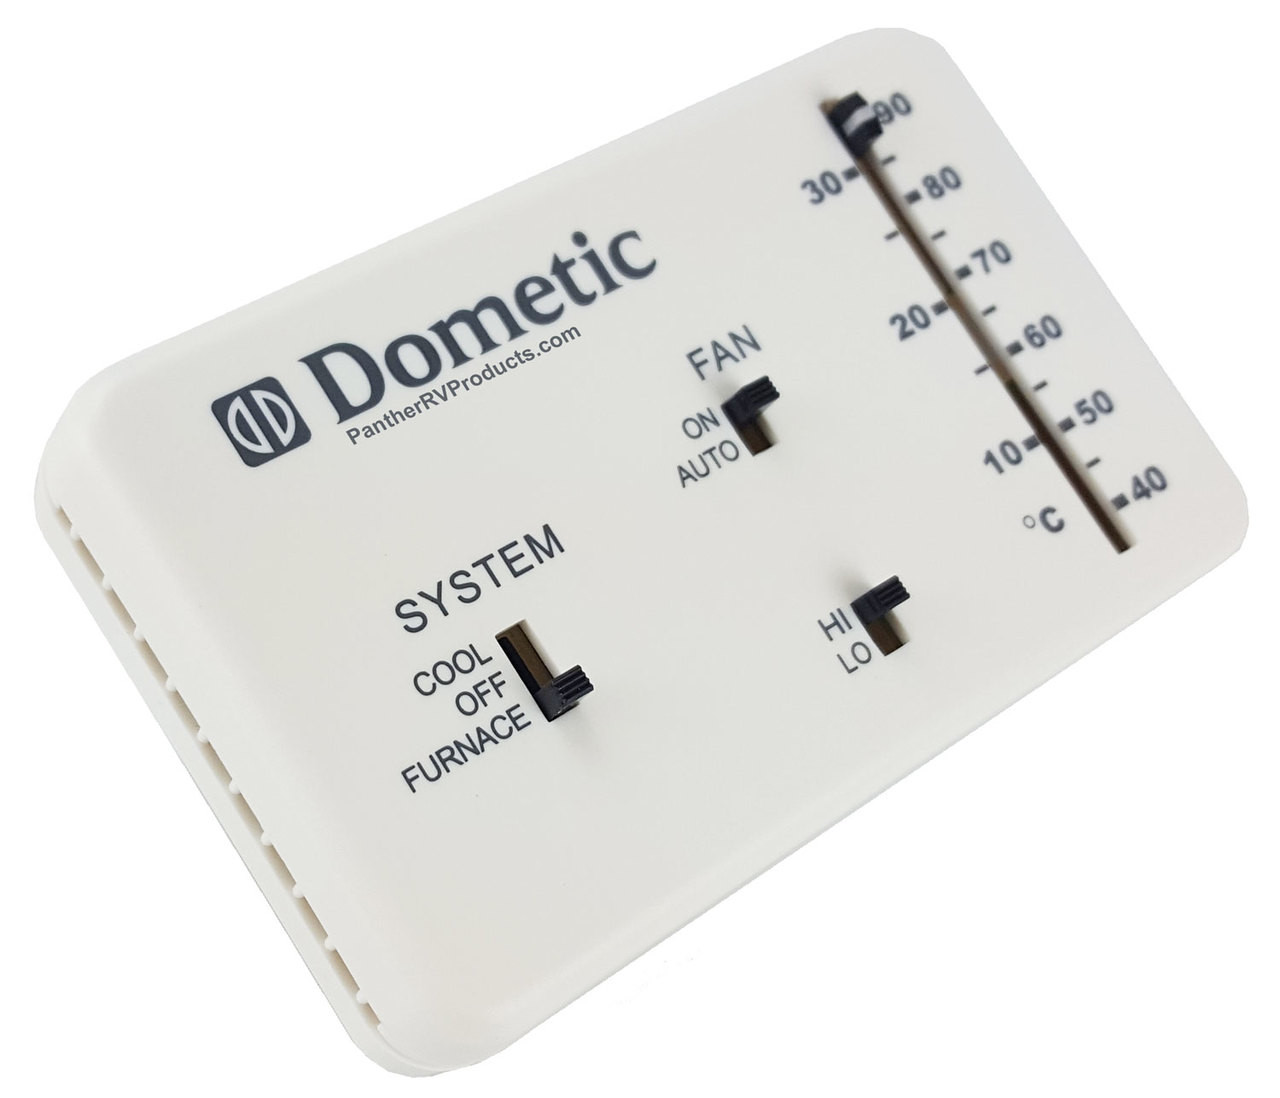 dometic 3106995 032 thermostat 6 wire analog control heat cool